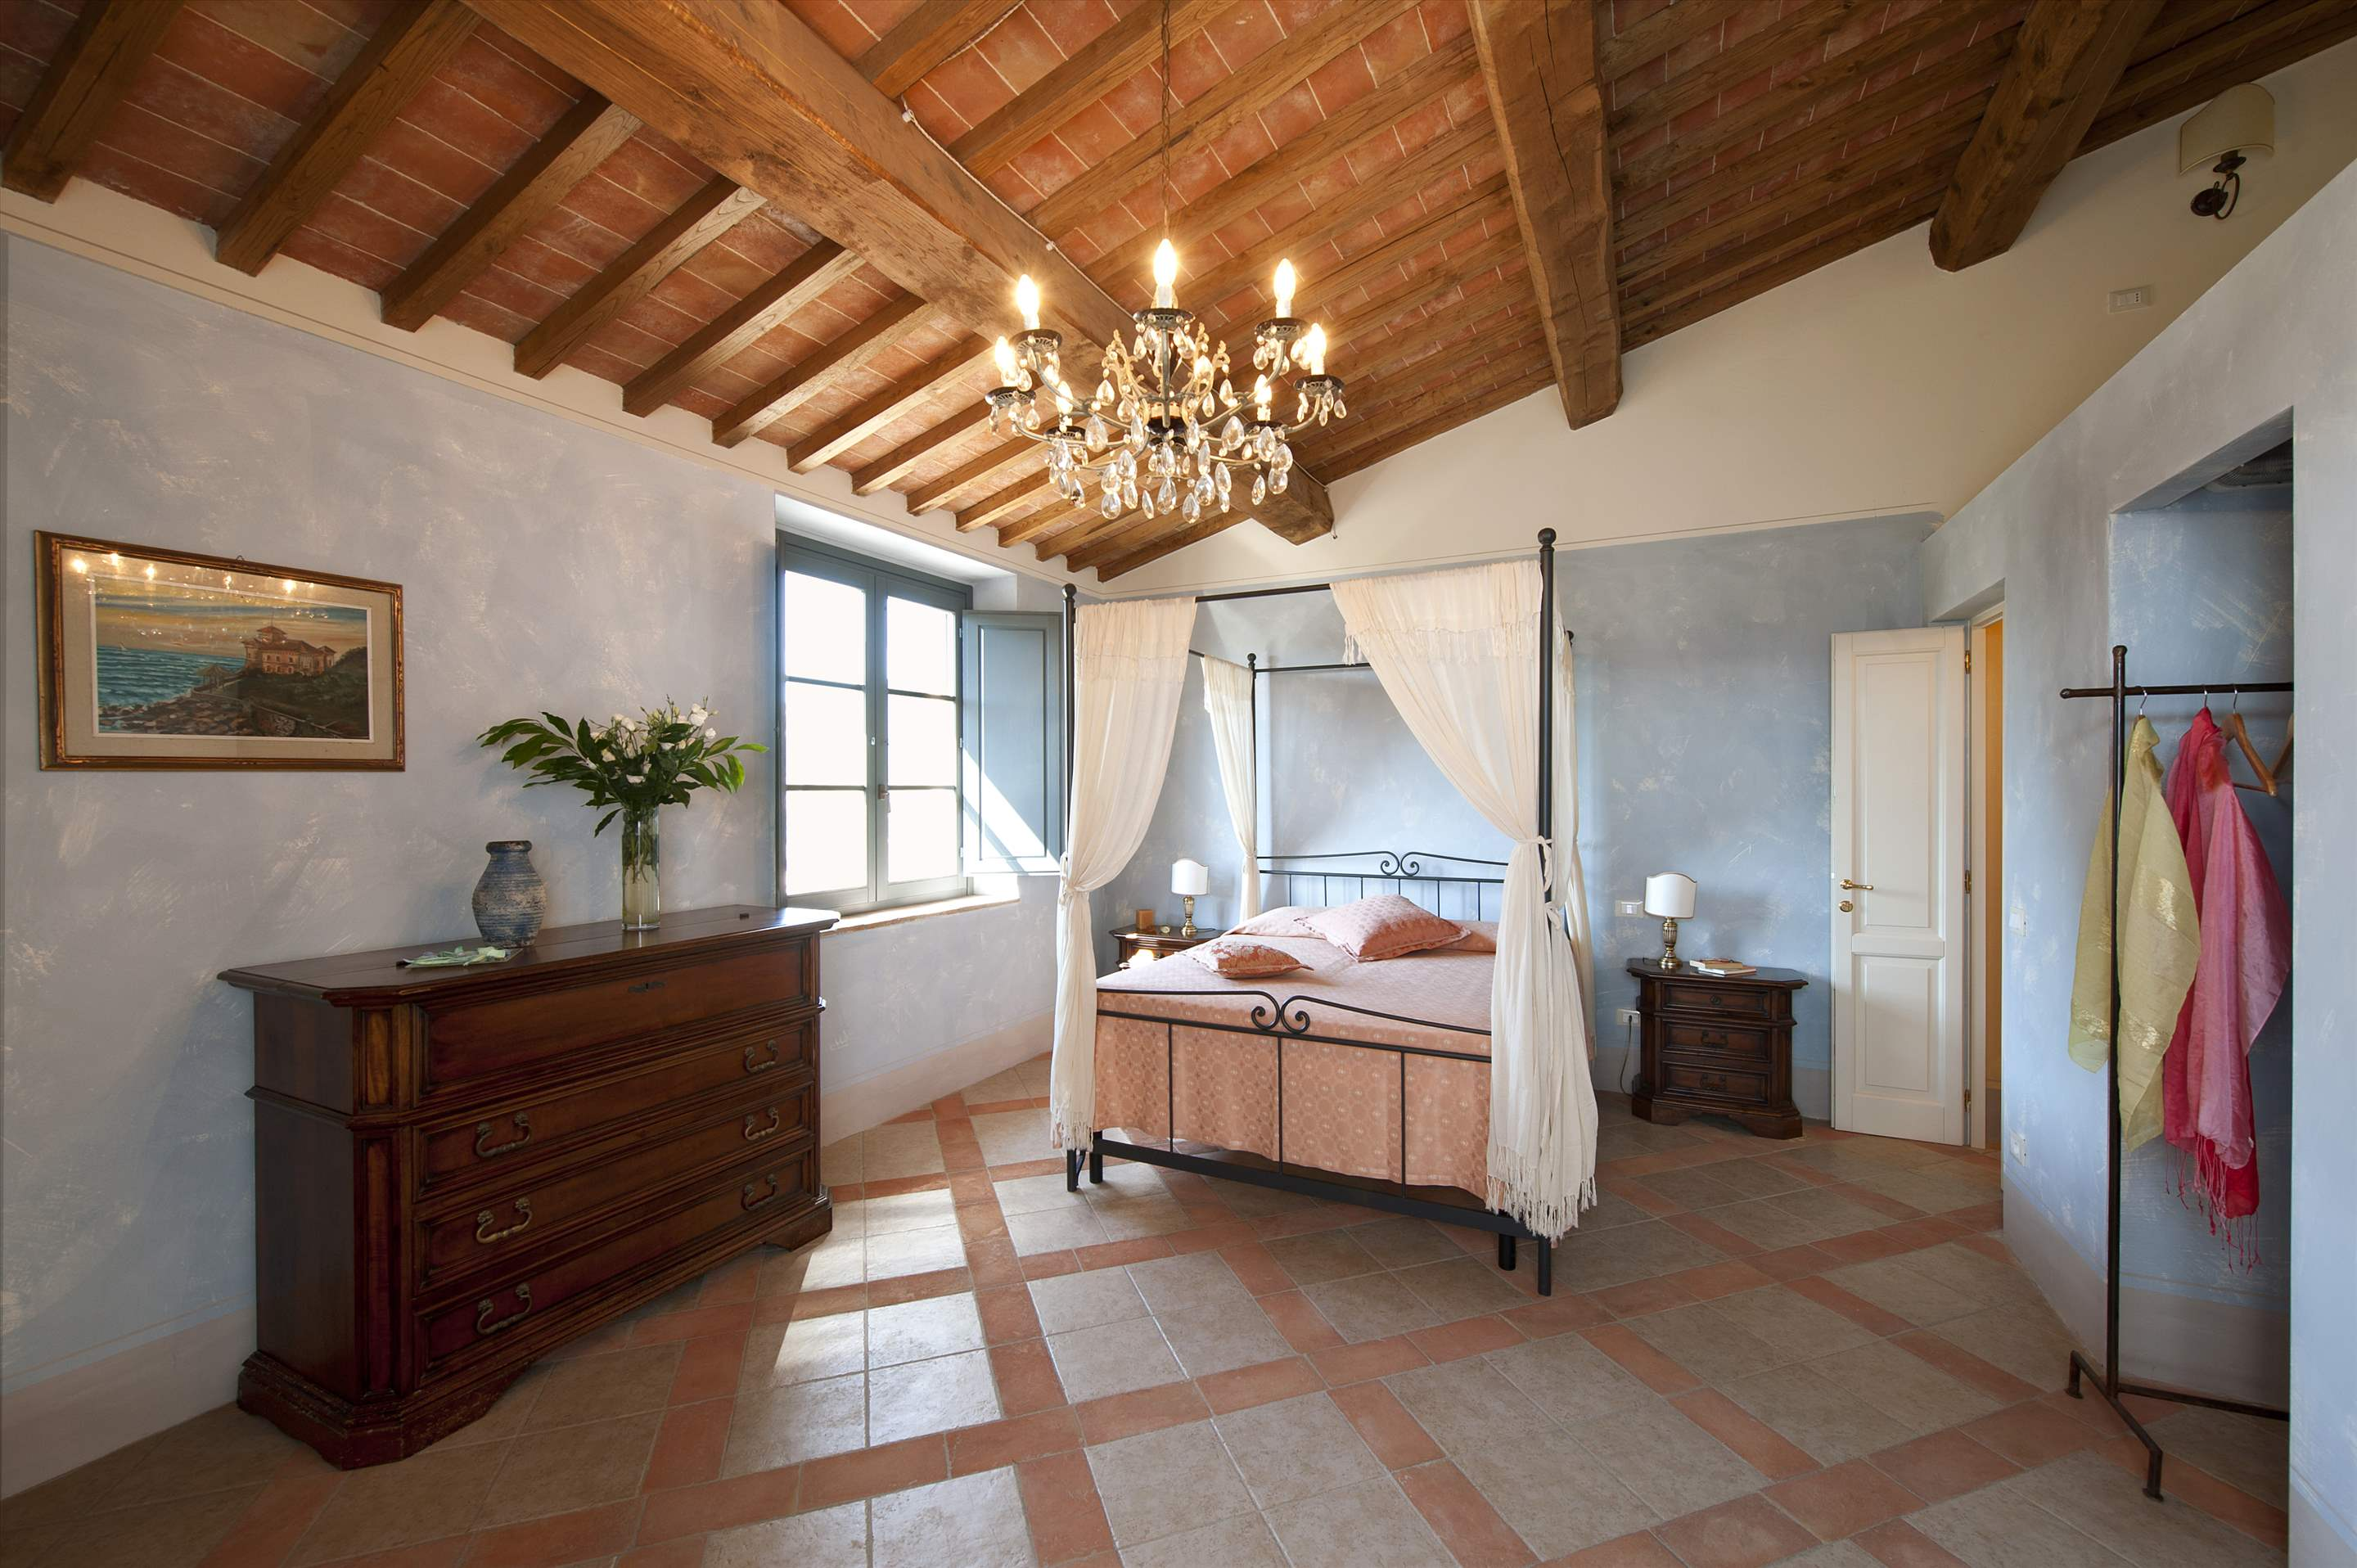 Podere Di Collina, First Floor, 4 bedroom villa in Tuscany Coast, Tuscany Photo #23